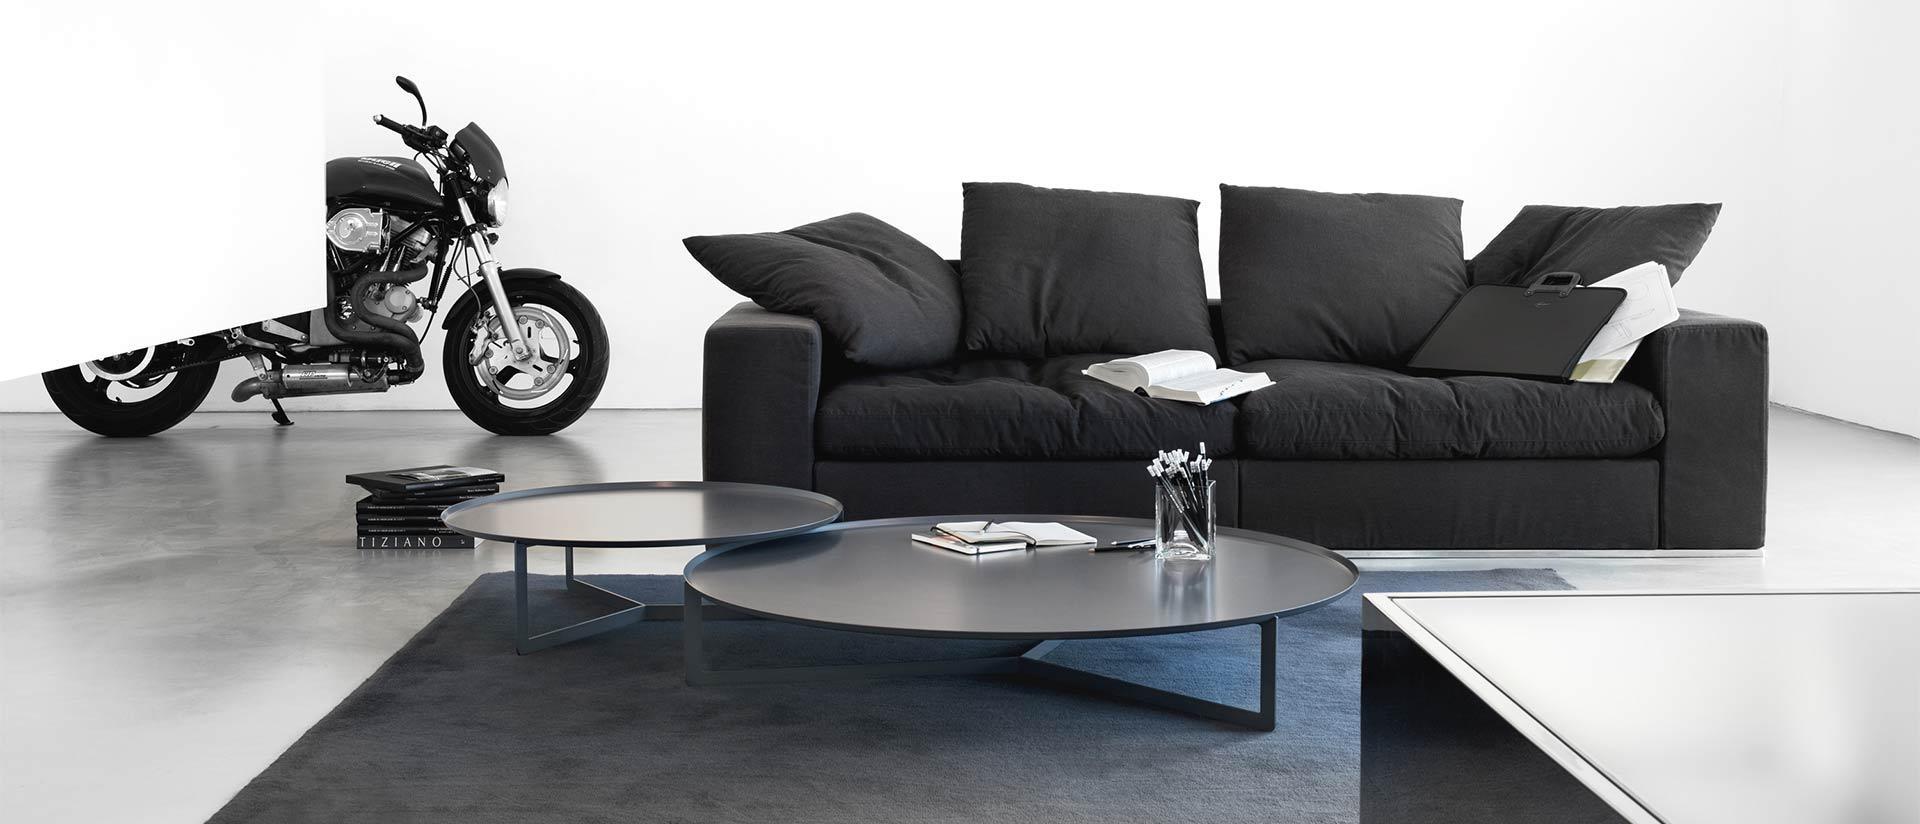 couchtisch aus metall puristisches design mit raffinierter wirkung. Black Bedroom Furniture Sets. Home Design Ideas